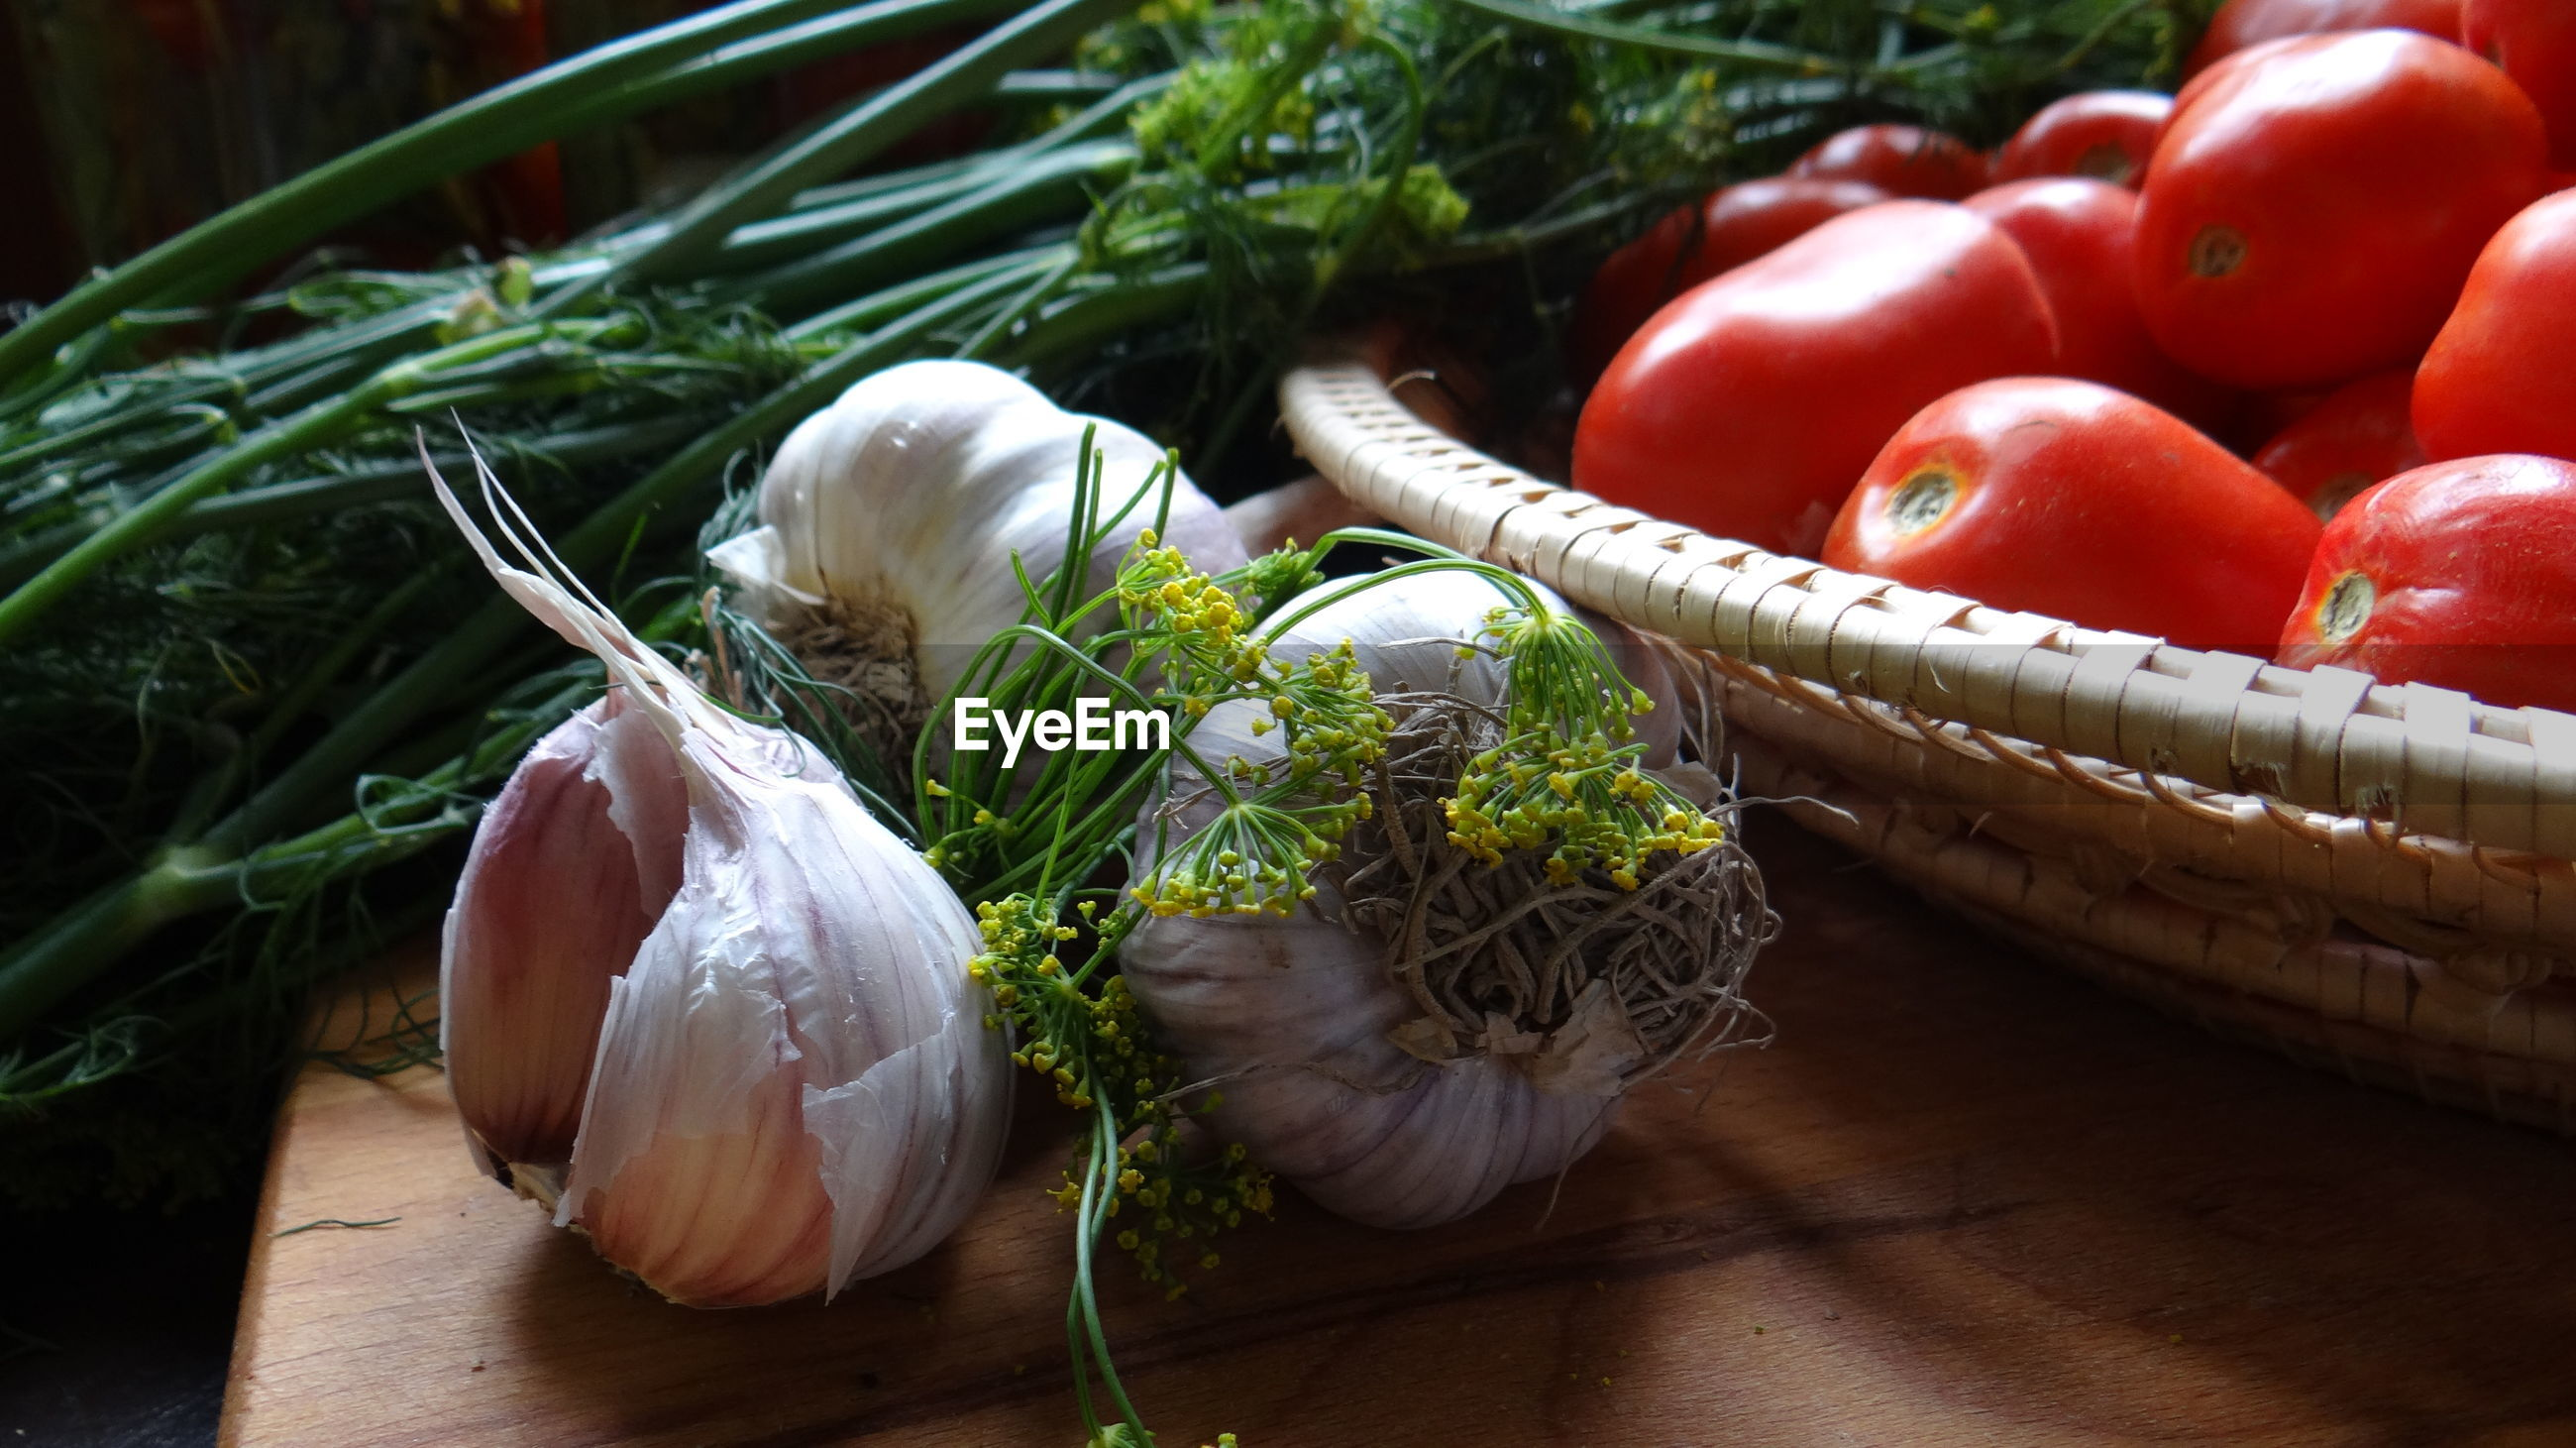 Close-up of tomatoes in bowl by garlic bulbs and herbs on table